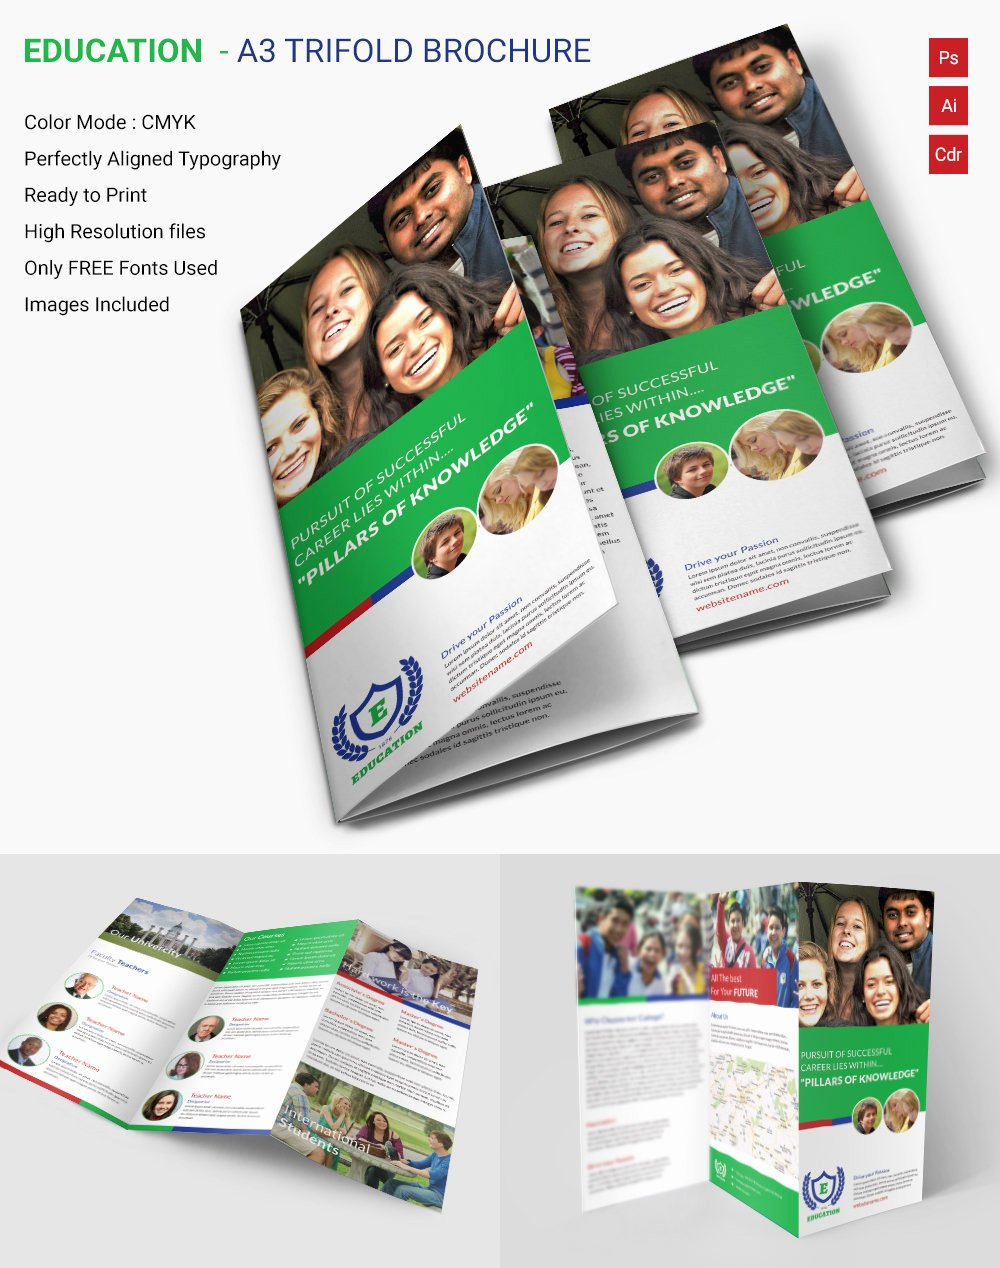 School Brochure Template Free Fresh 19 School Brochure Psd Templates & Designs